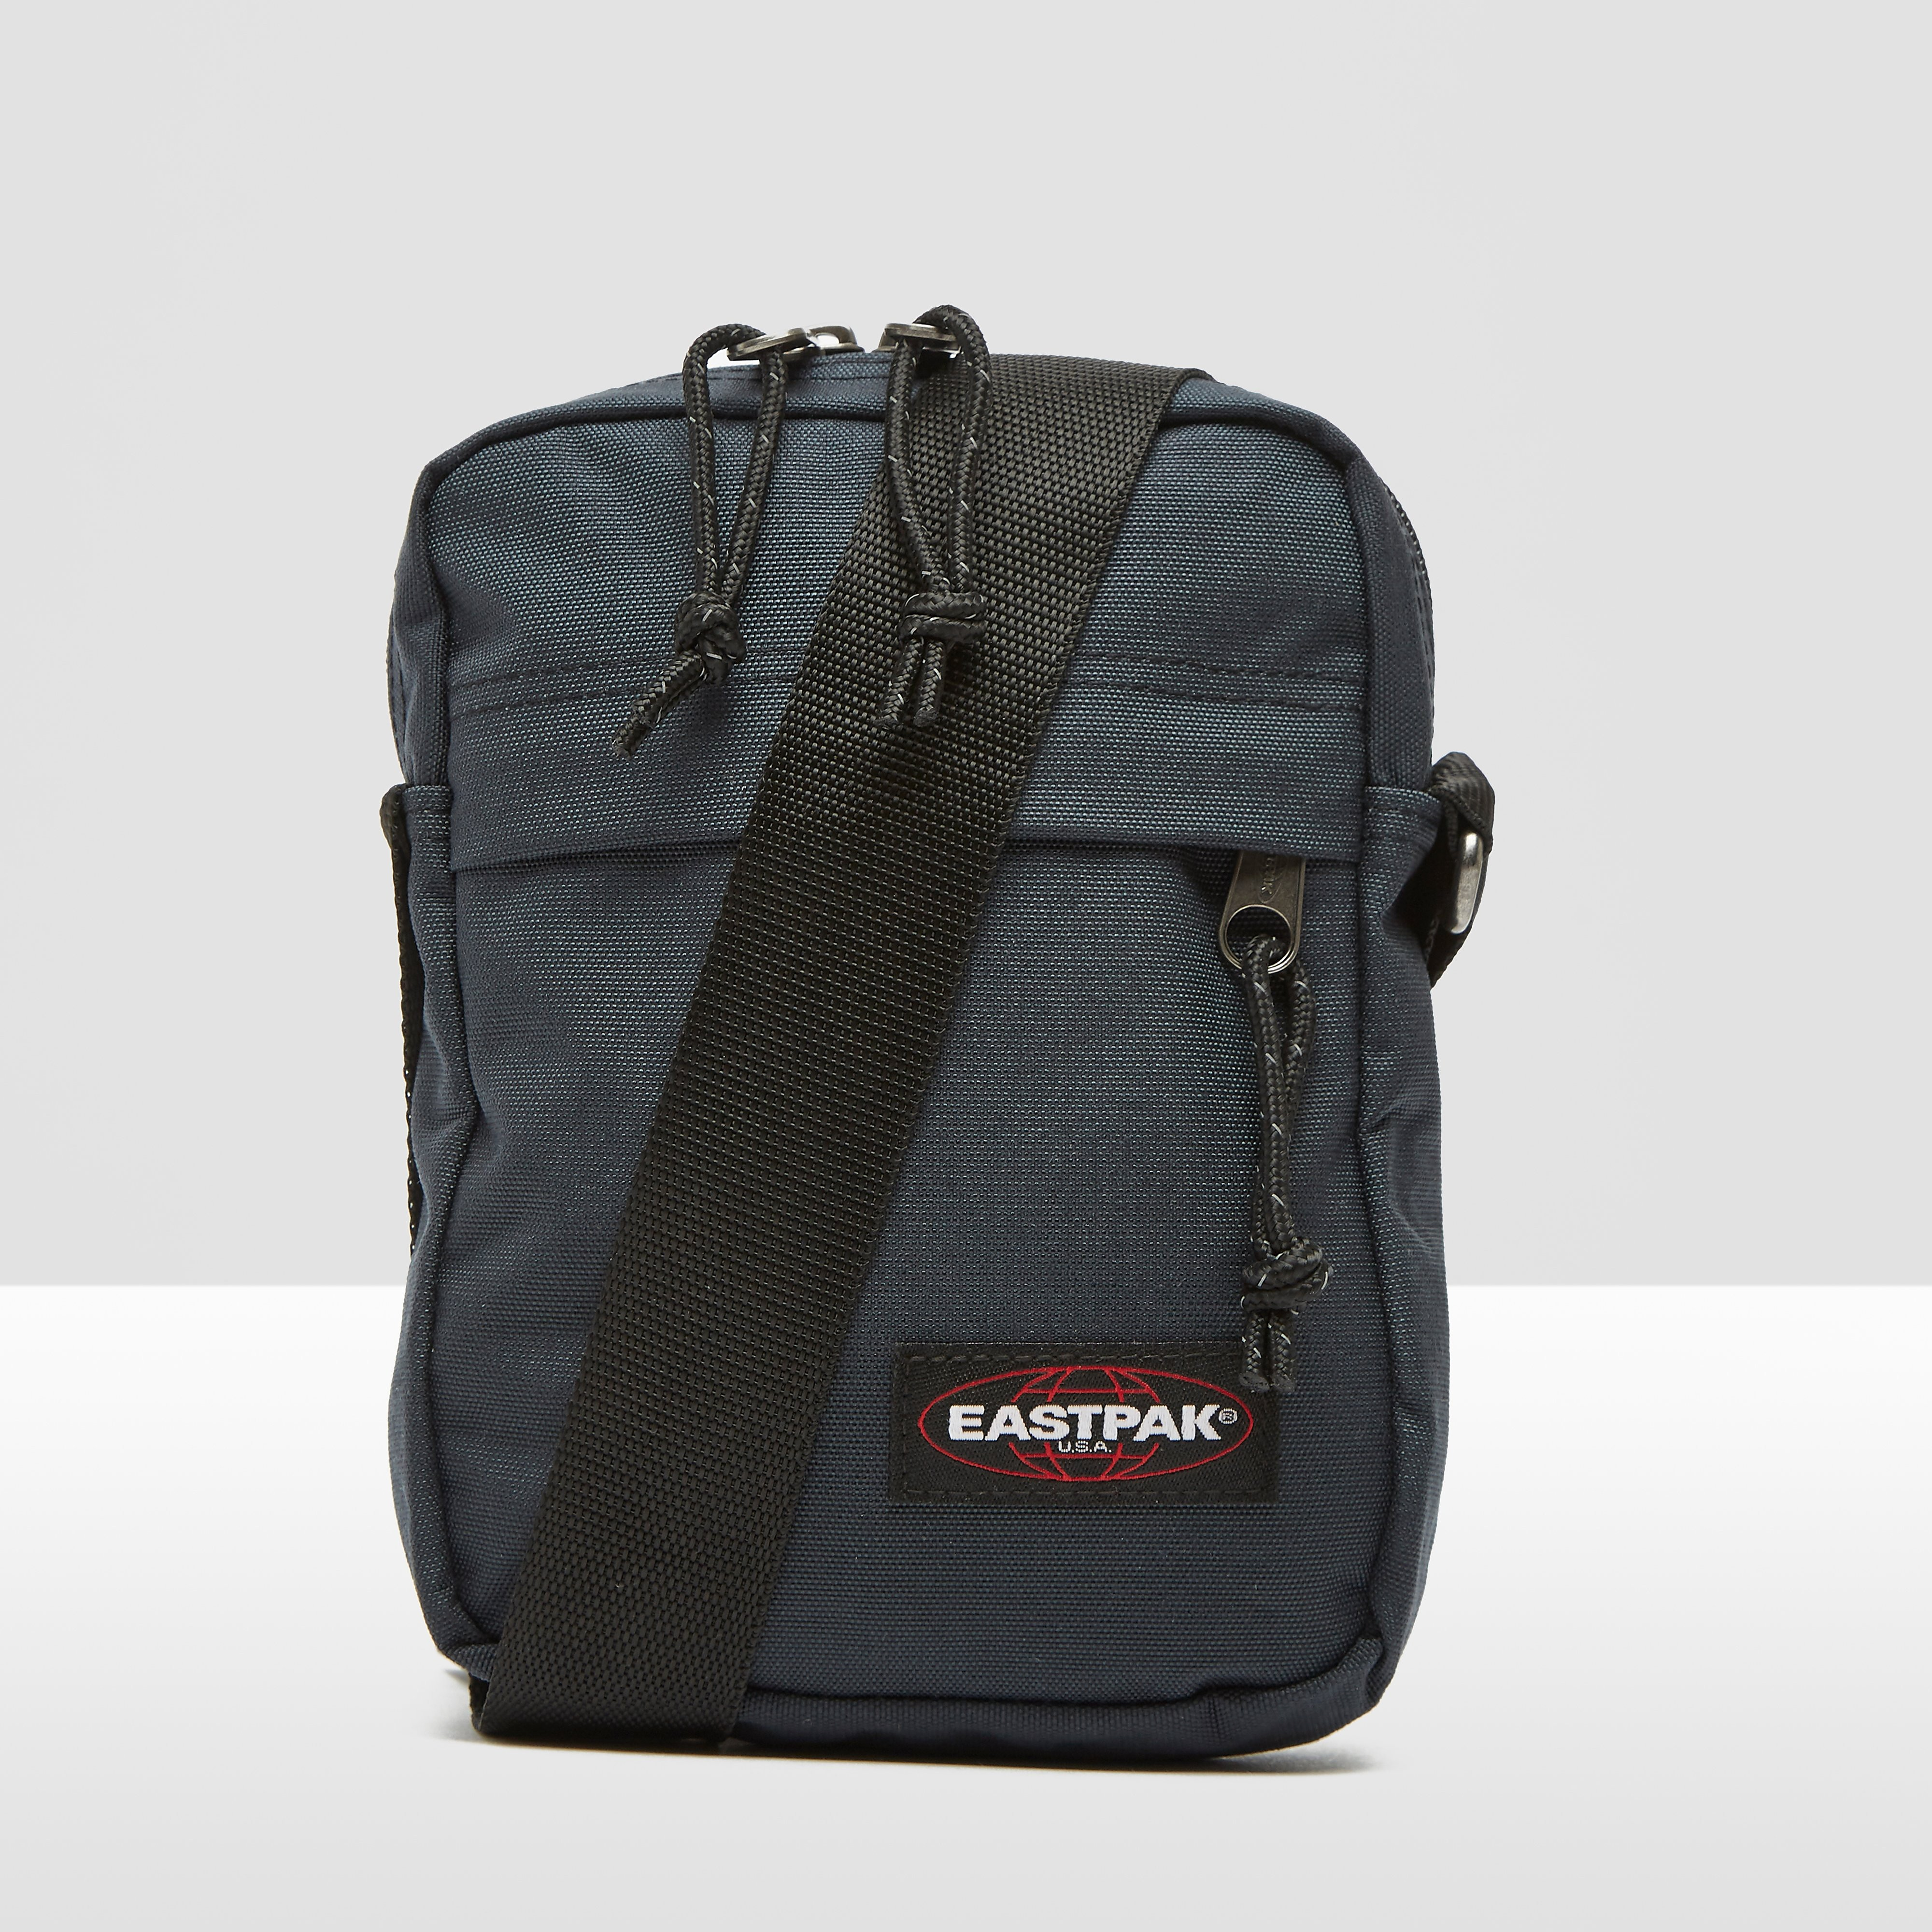 EASTPAK THE ONE SCHOUDERTAS BLAUW